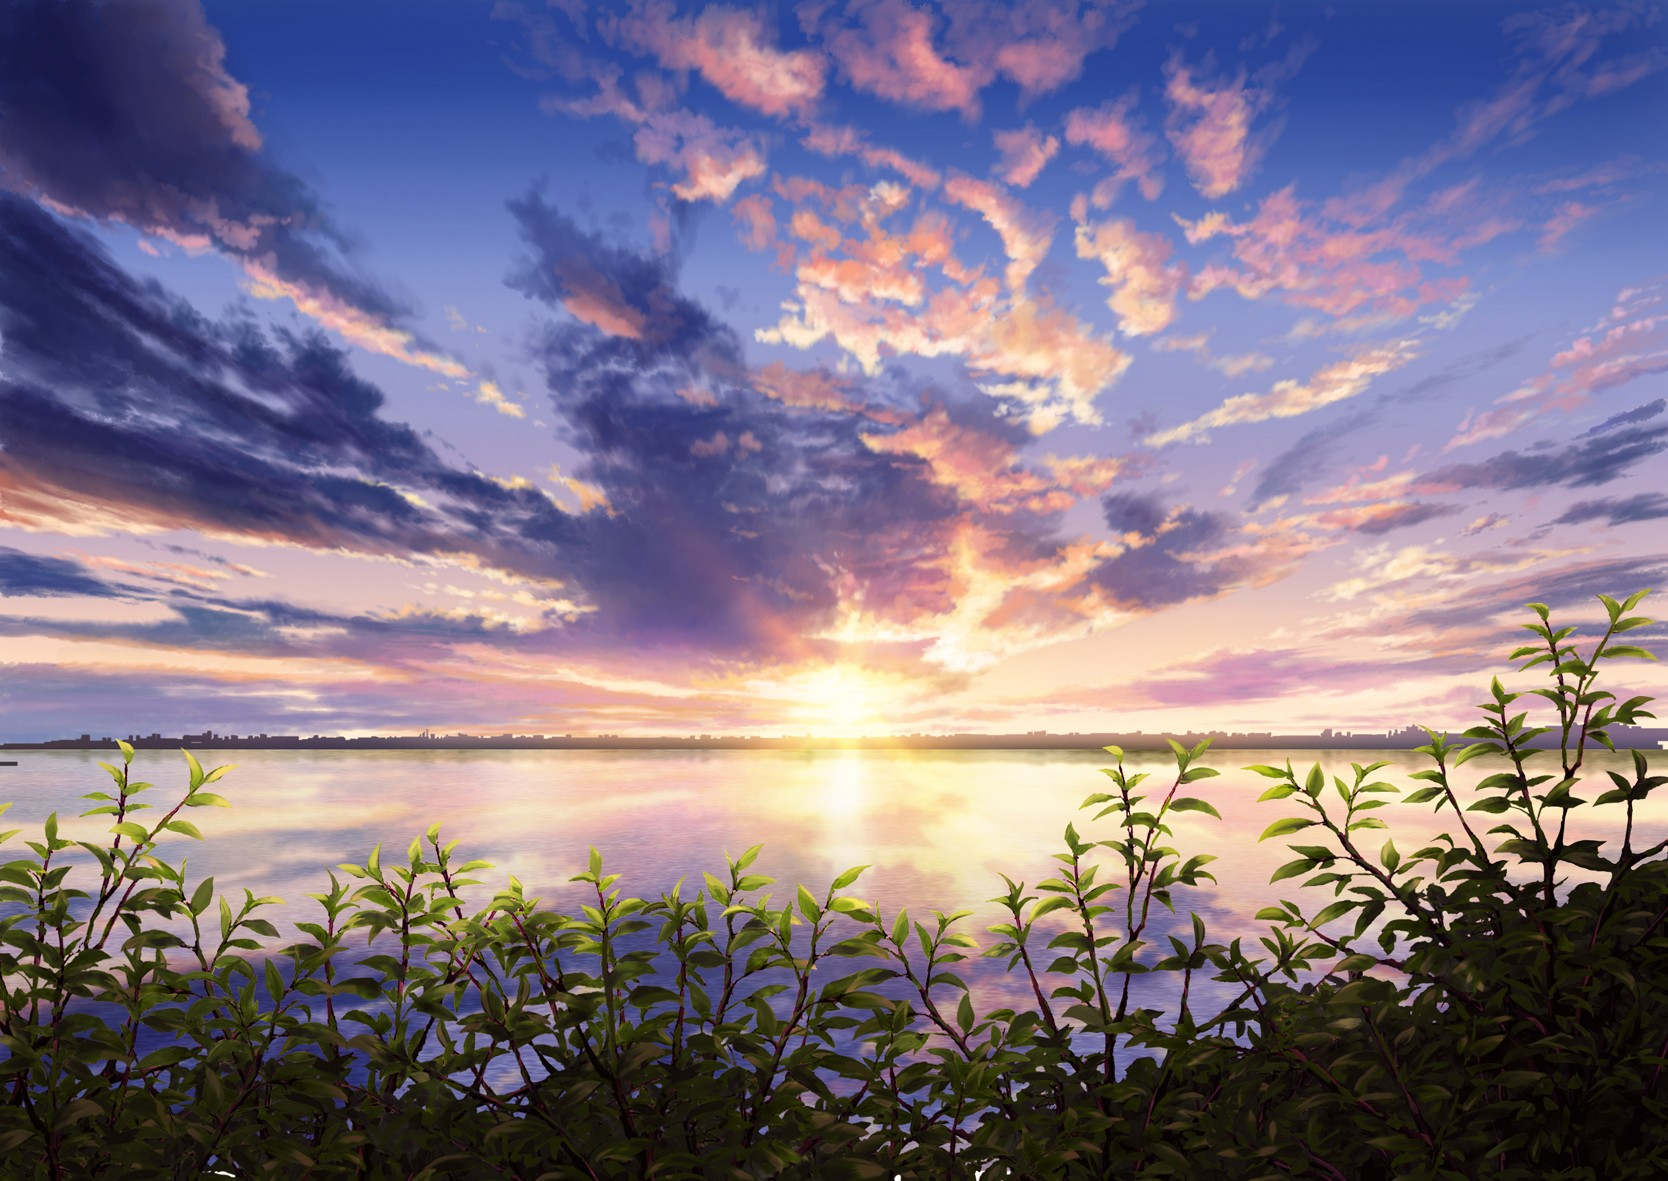 Galaxy S4 Fall Wallpaper Anime Scenery Sunset Leaves Nature Wallpaper Anime